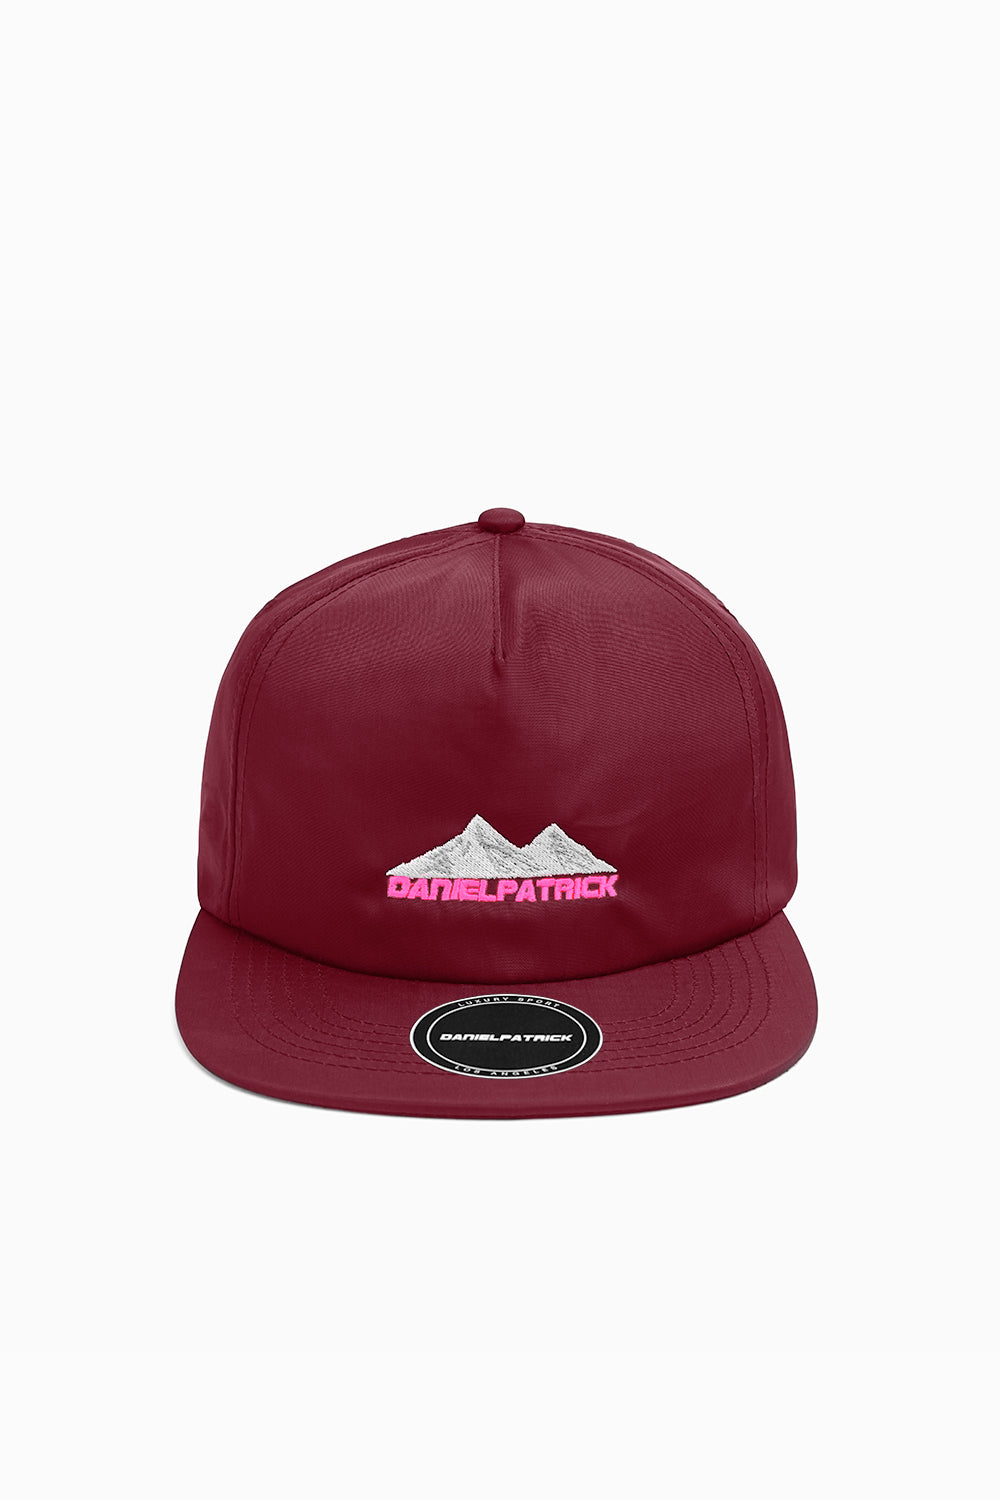 moving mountains cap / maroon nylon + wildflower pink